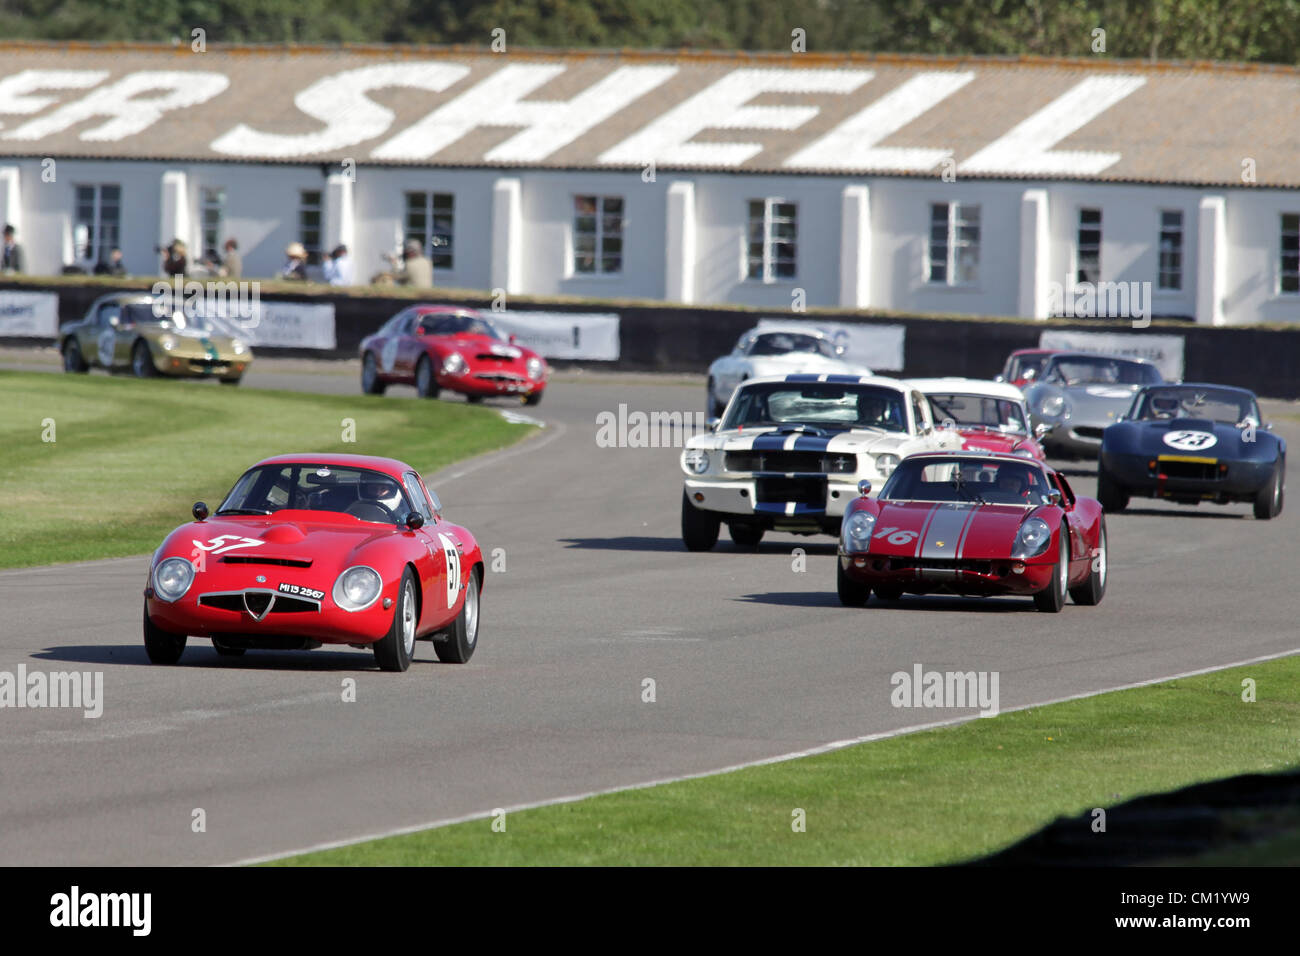 Goodwood Estate, Chichester, UK. 15th September 2012. Charles Knill-Jones driving a red 1963 Alfa Romeo Giulia TZ1 - Stock Image